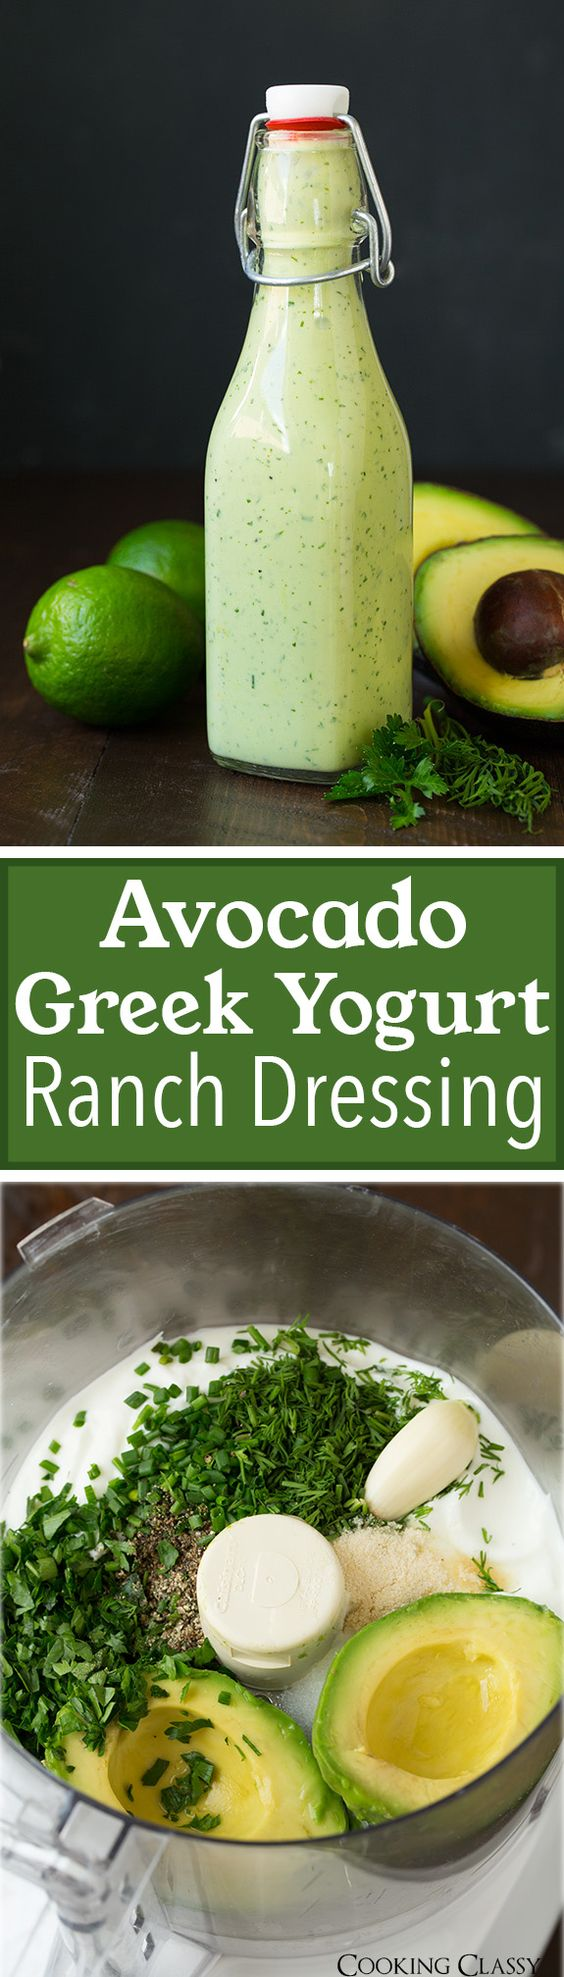 Avocado Greek Yogurt Ranch Dressing - Easy, made from scratch and so delicious! Use as a veggie dip too, by omitting the milk.